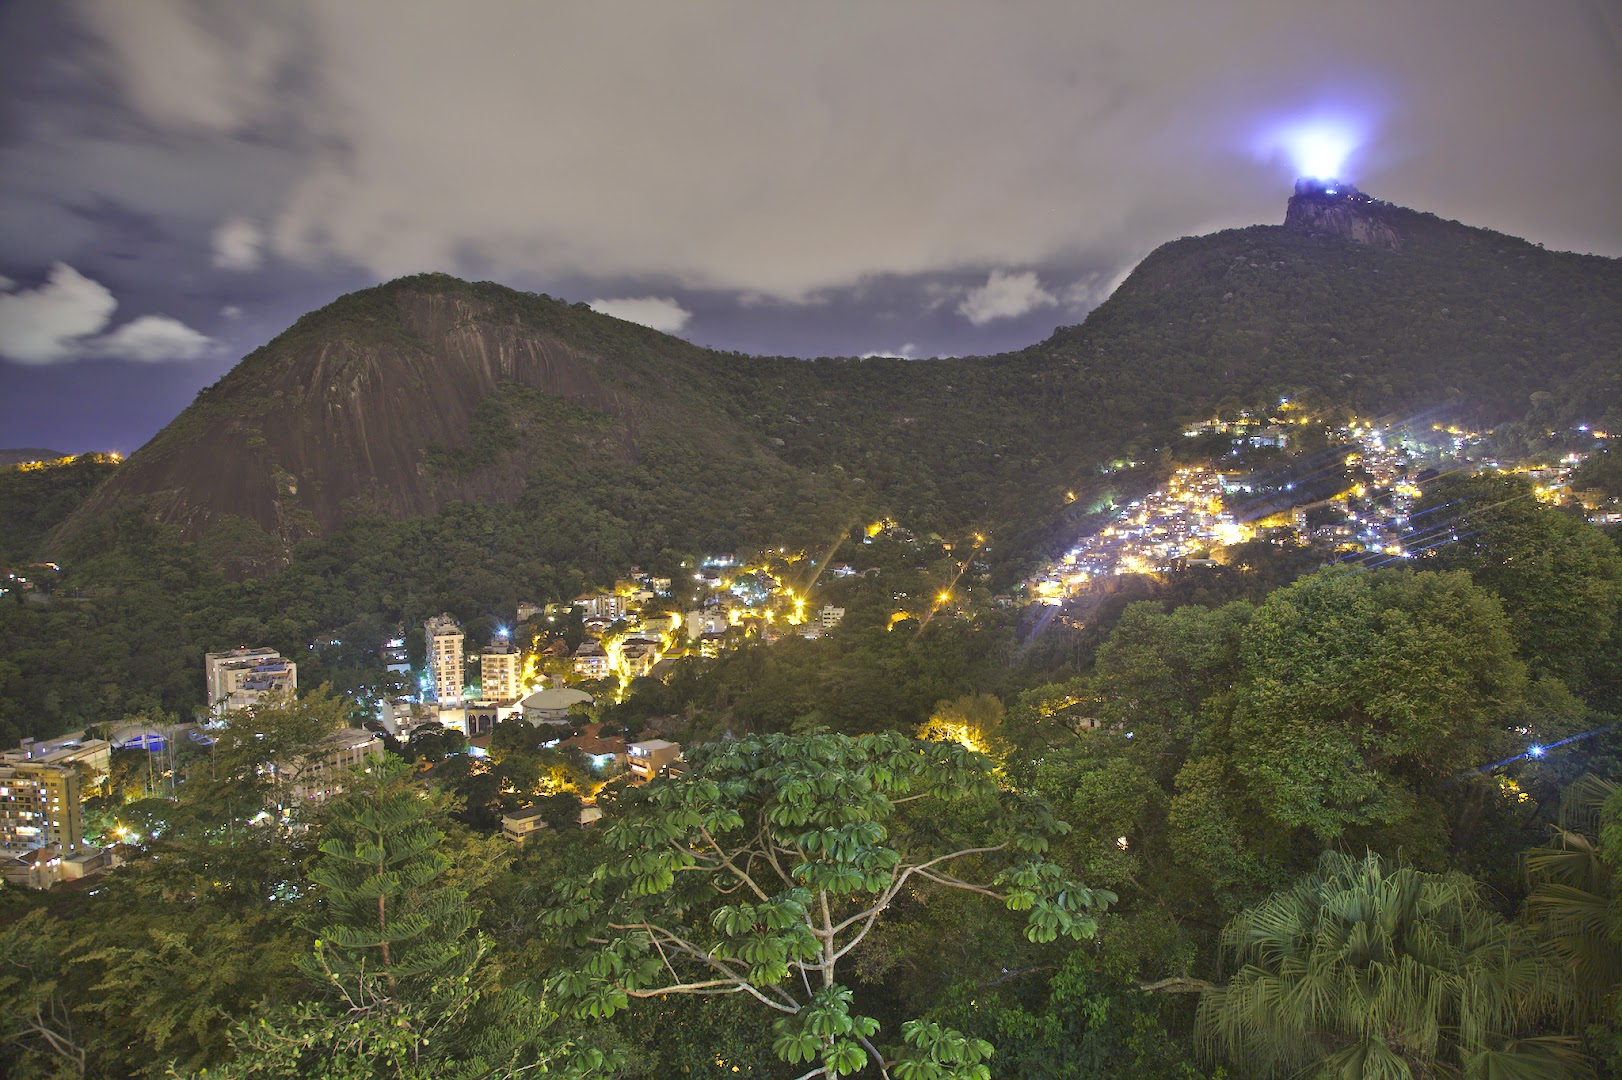 View from a terrace in Santa Teresa during the night. Bright spot is the Cristo Redentor